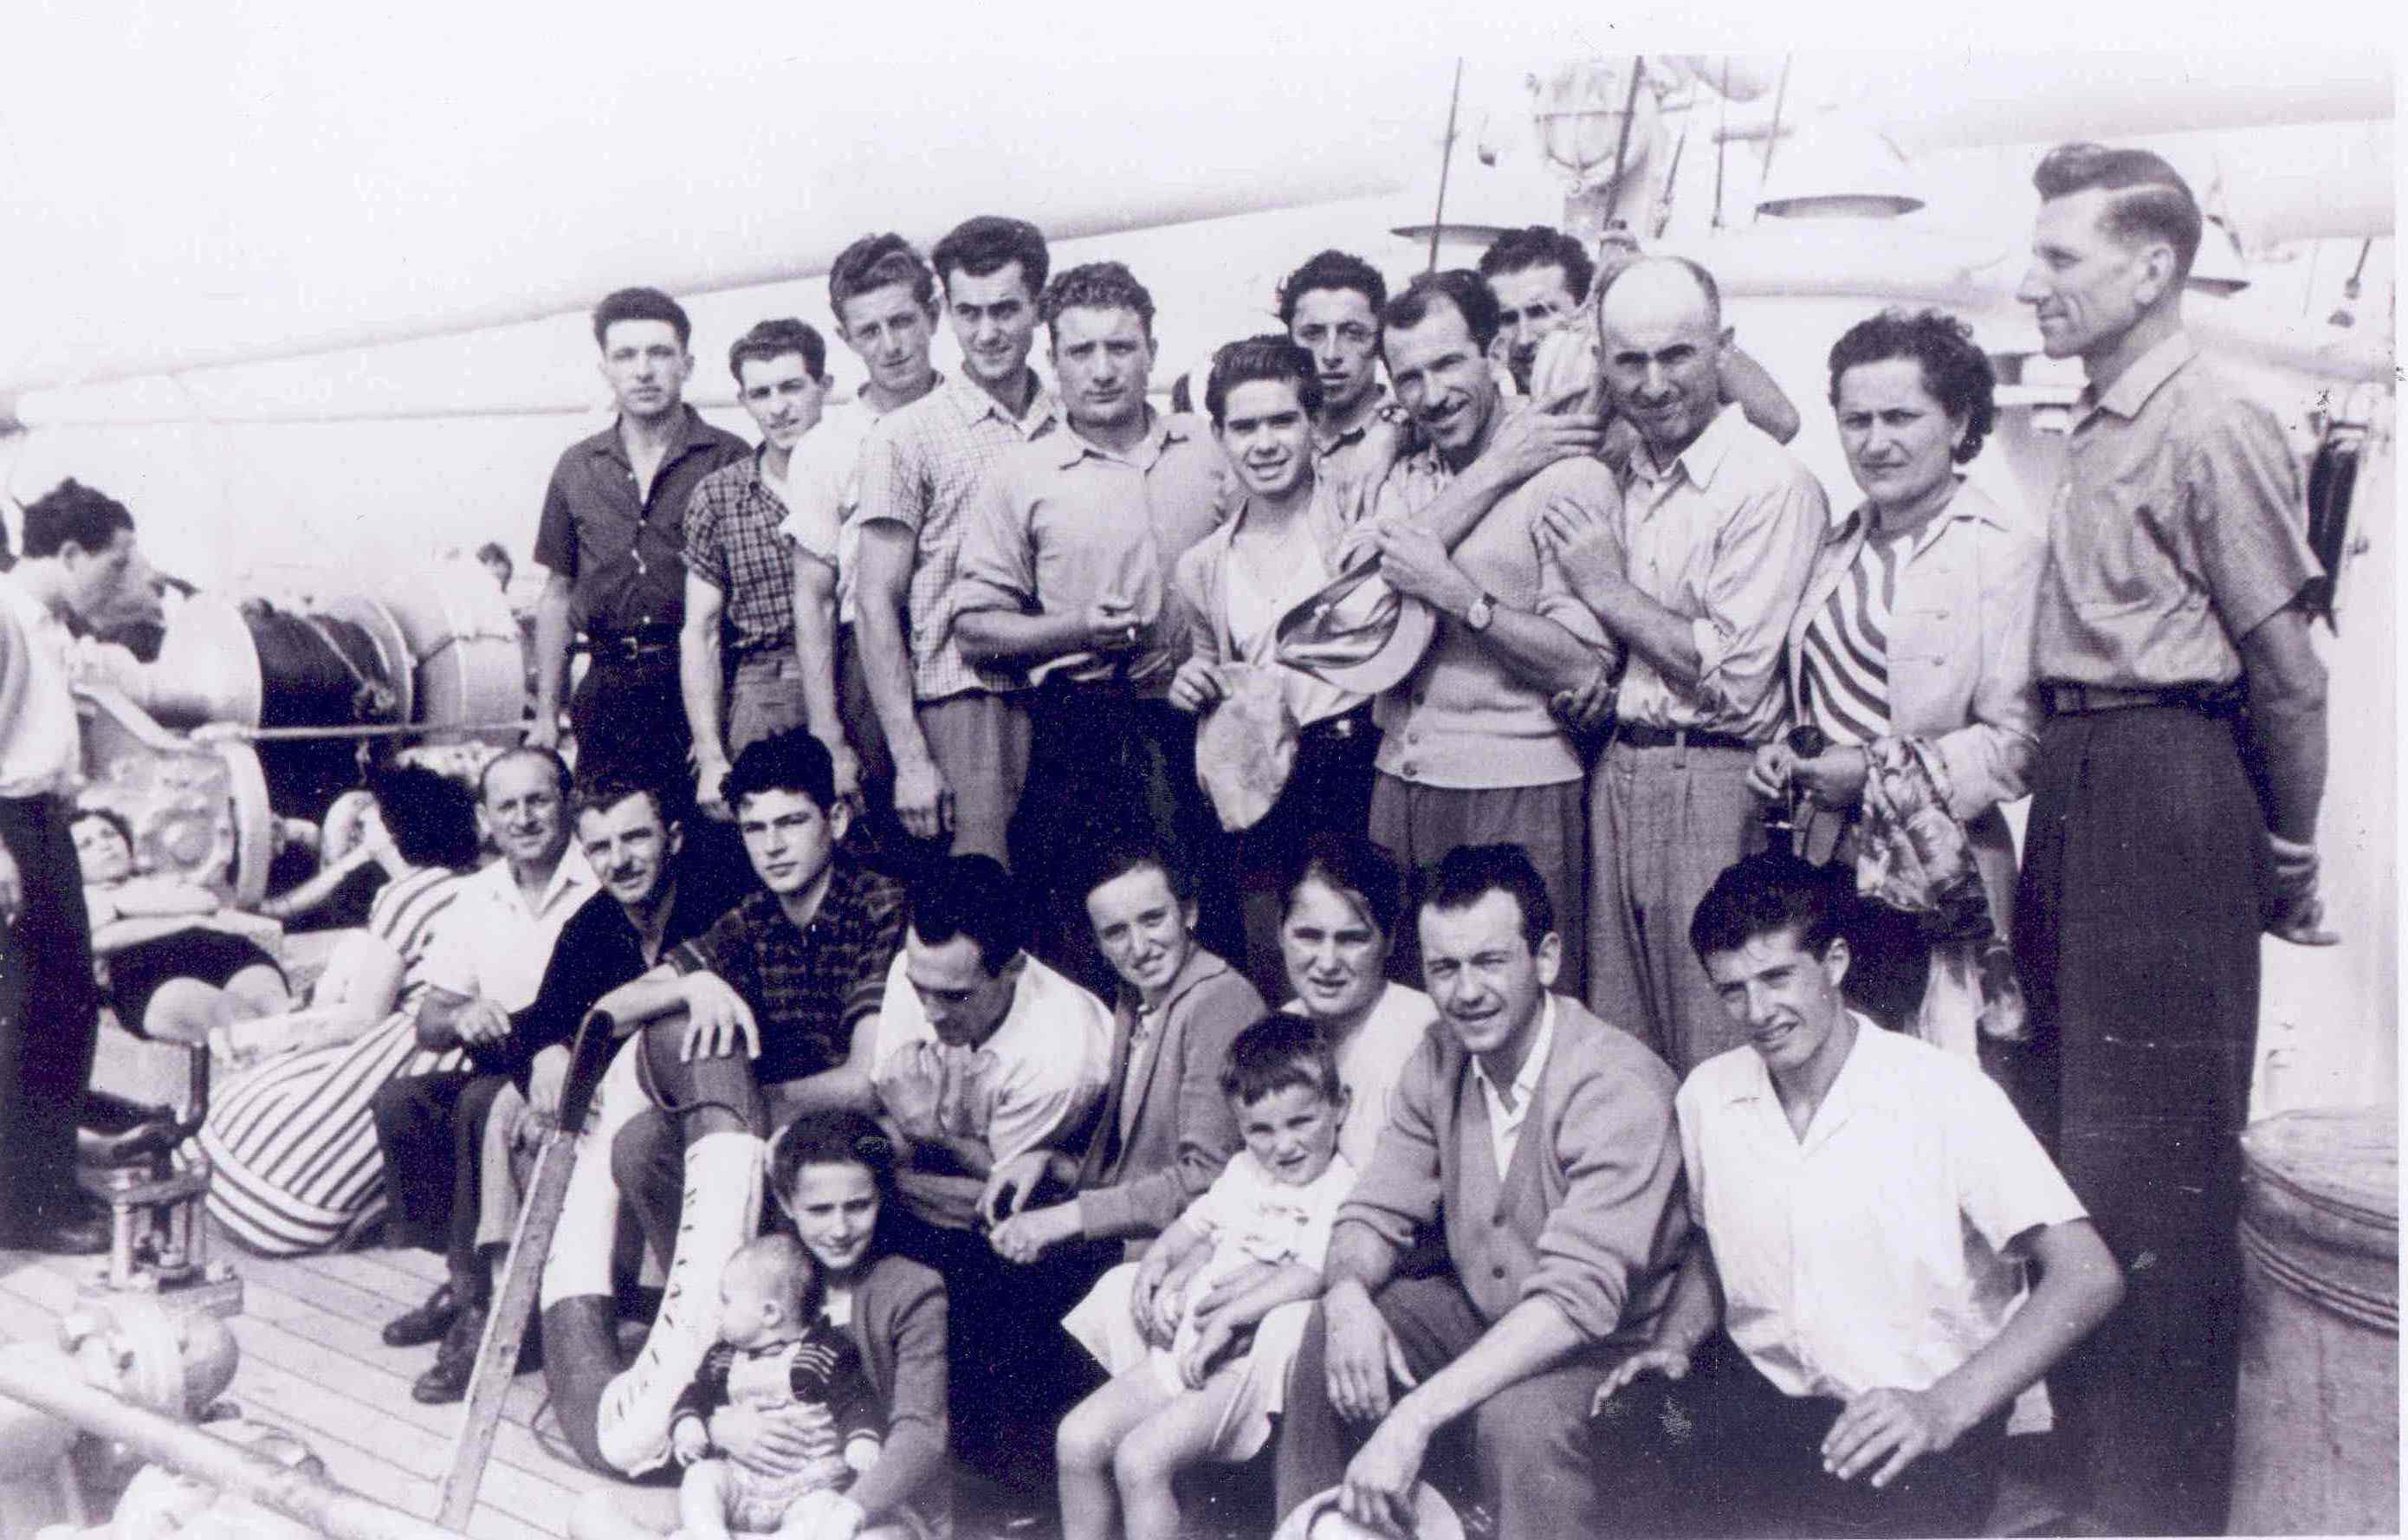 ITALIAN ANCESTRY RESEARCH & TOUR